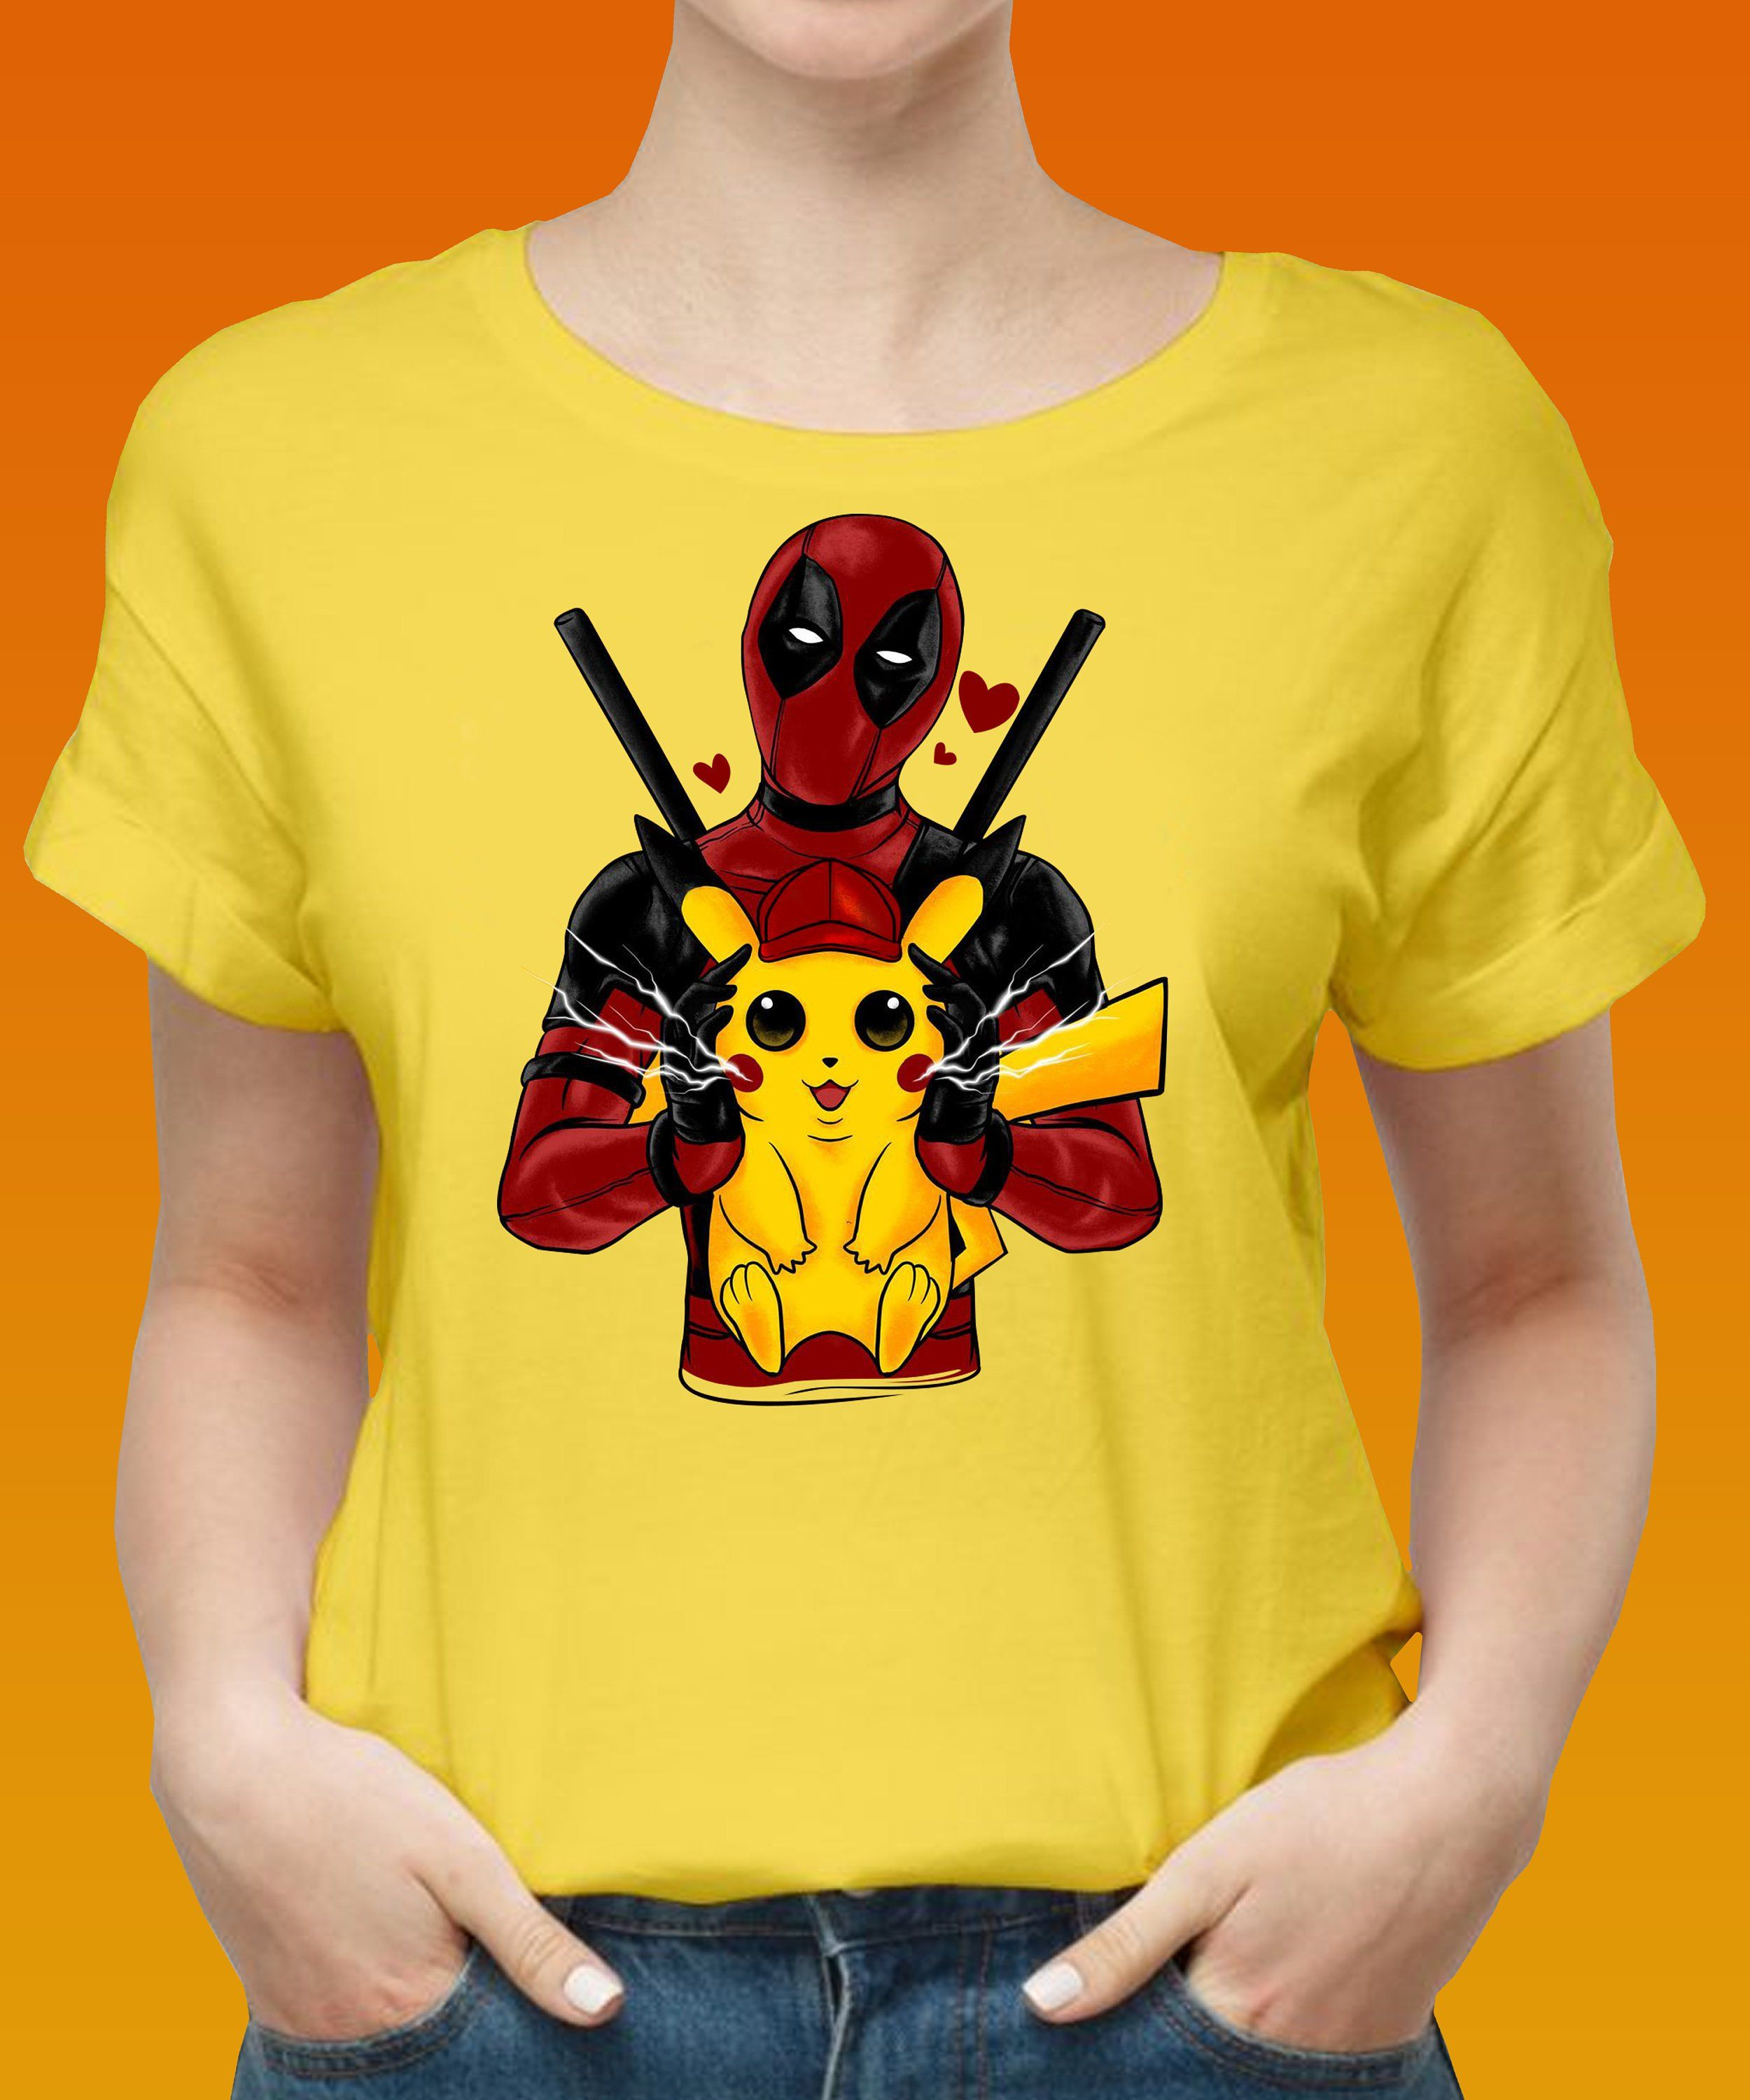 179a40d03 pikachu deadpool in love - pikachu clothing - deadpool birthday Gift  Detective, Pikachu Pokeman Meme